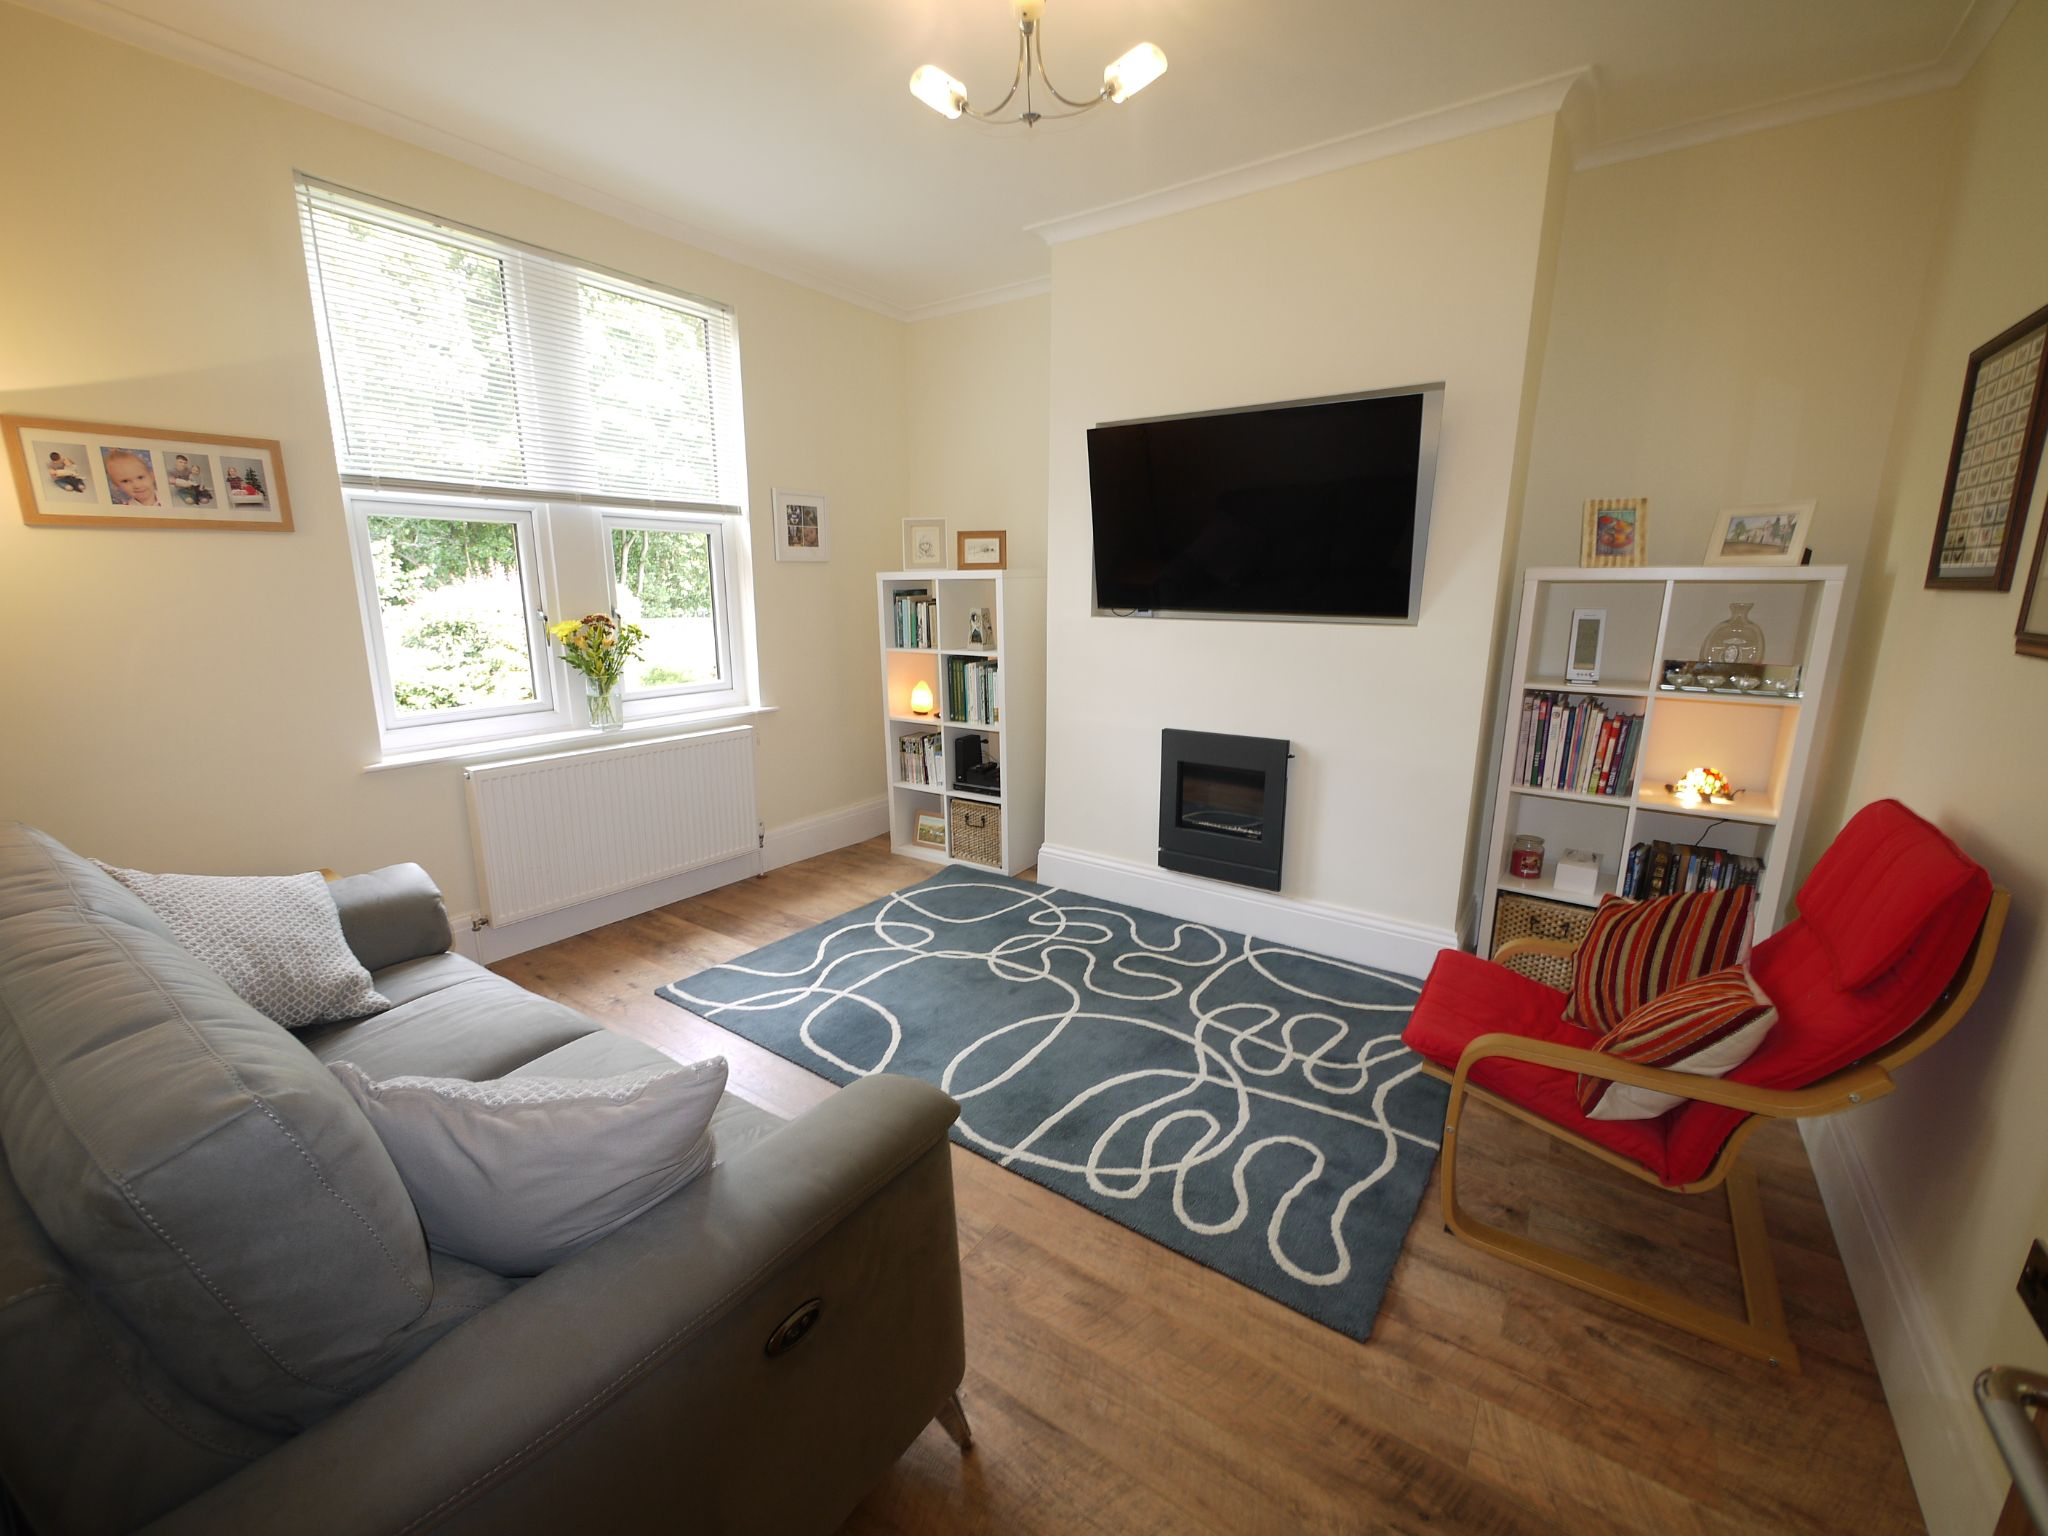 4 bedroom detached house For Sale in Halifax - Lounge.